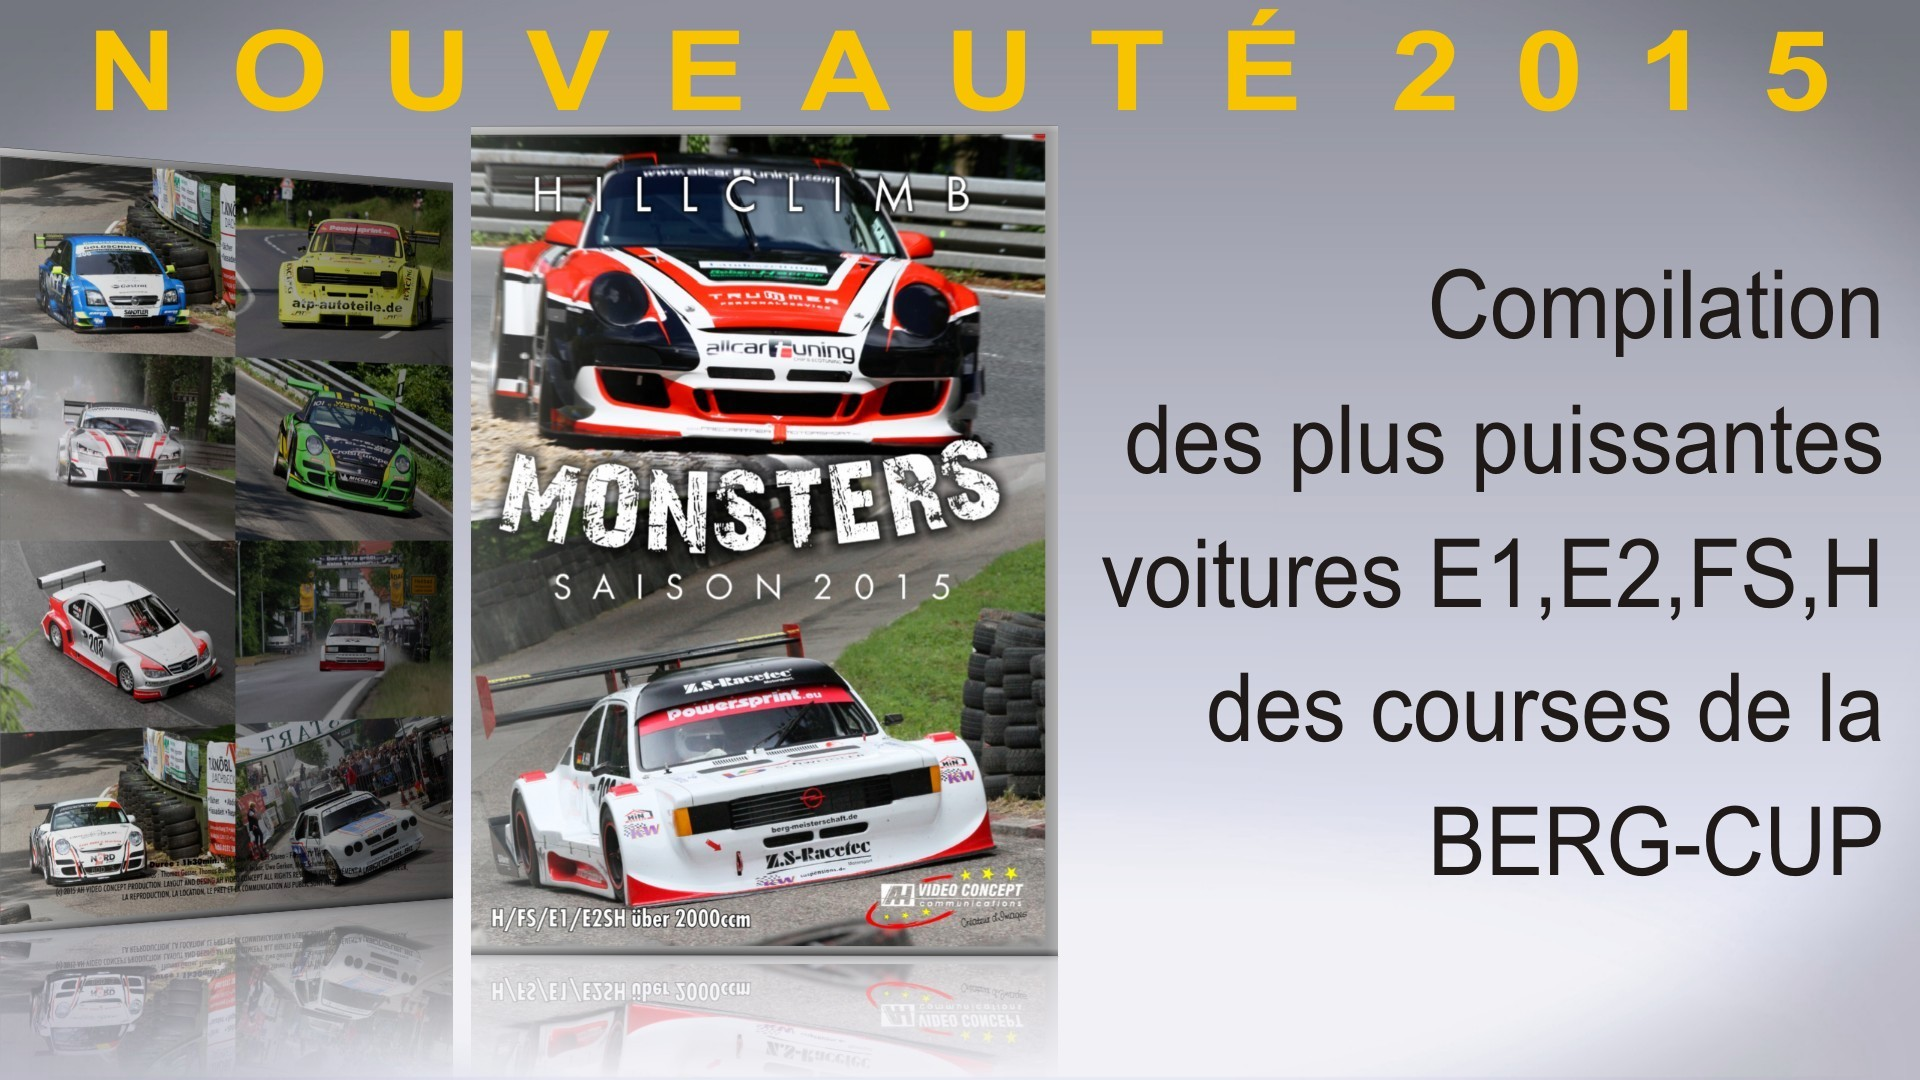 HillClimb Monsters 2015